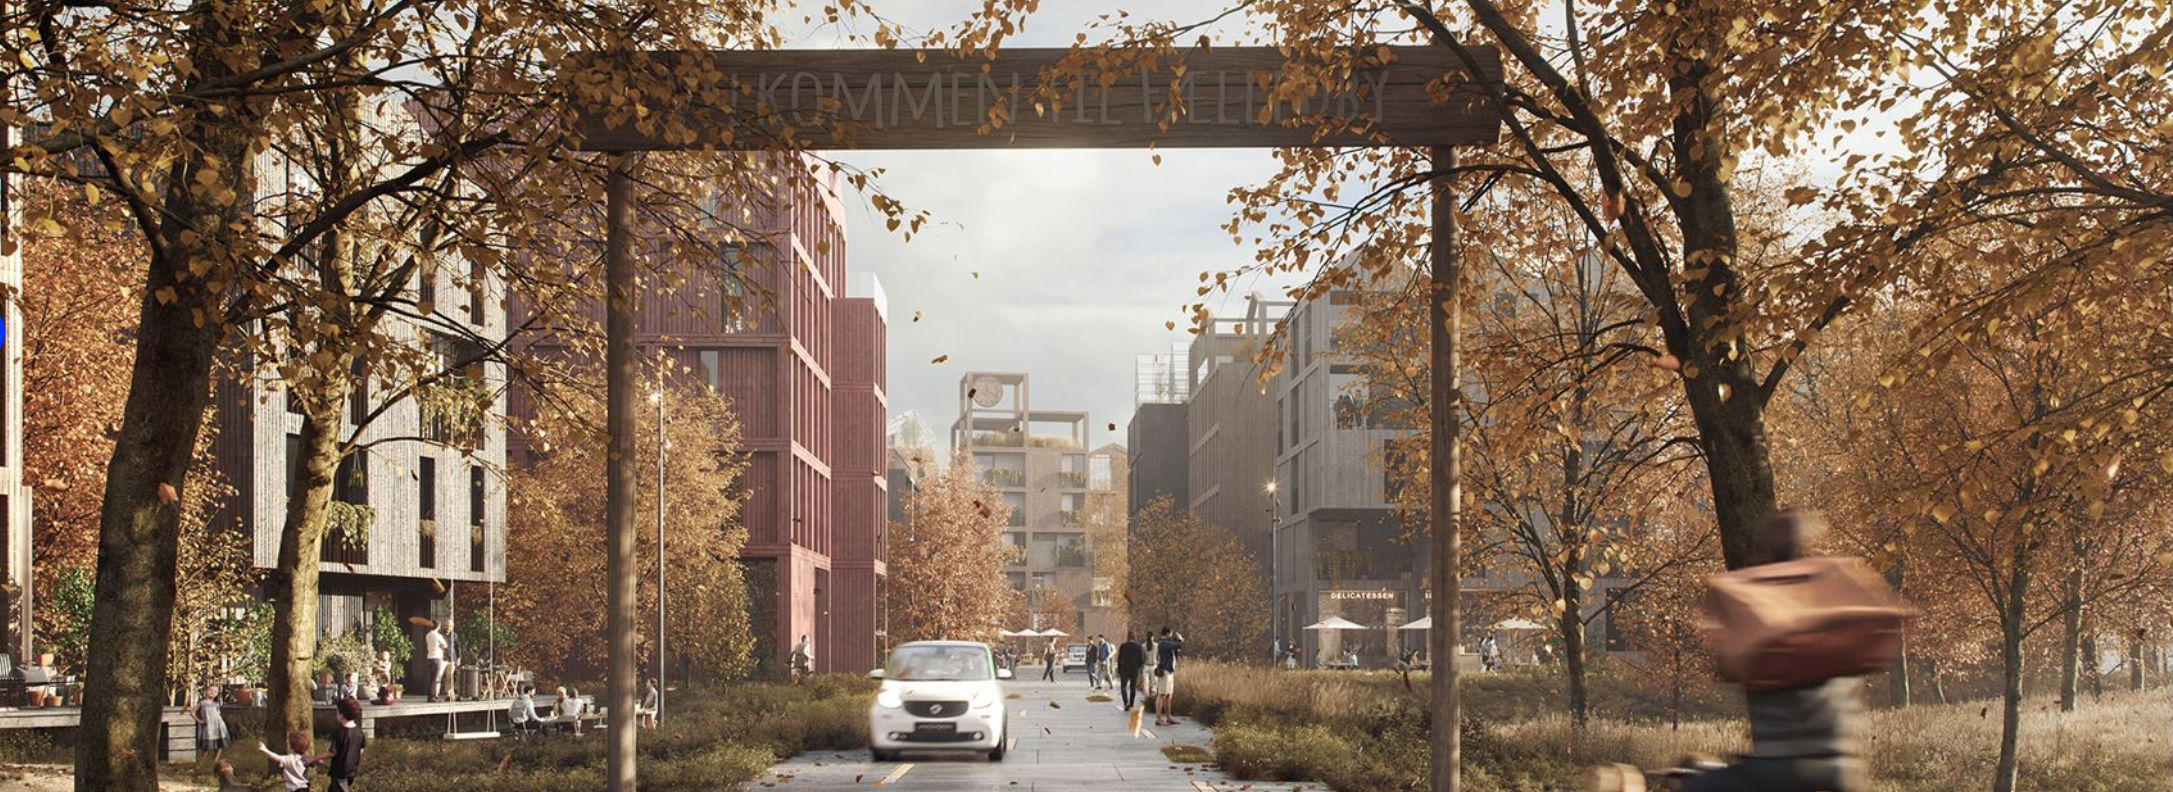 <br />Foto: Henning Larsen Architects, MOE Seacon, MOE urban development, Coop